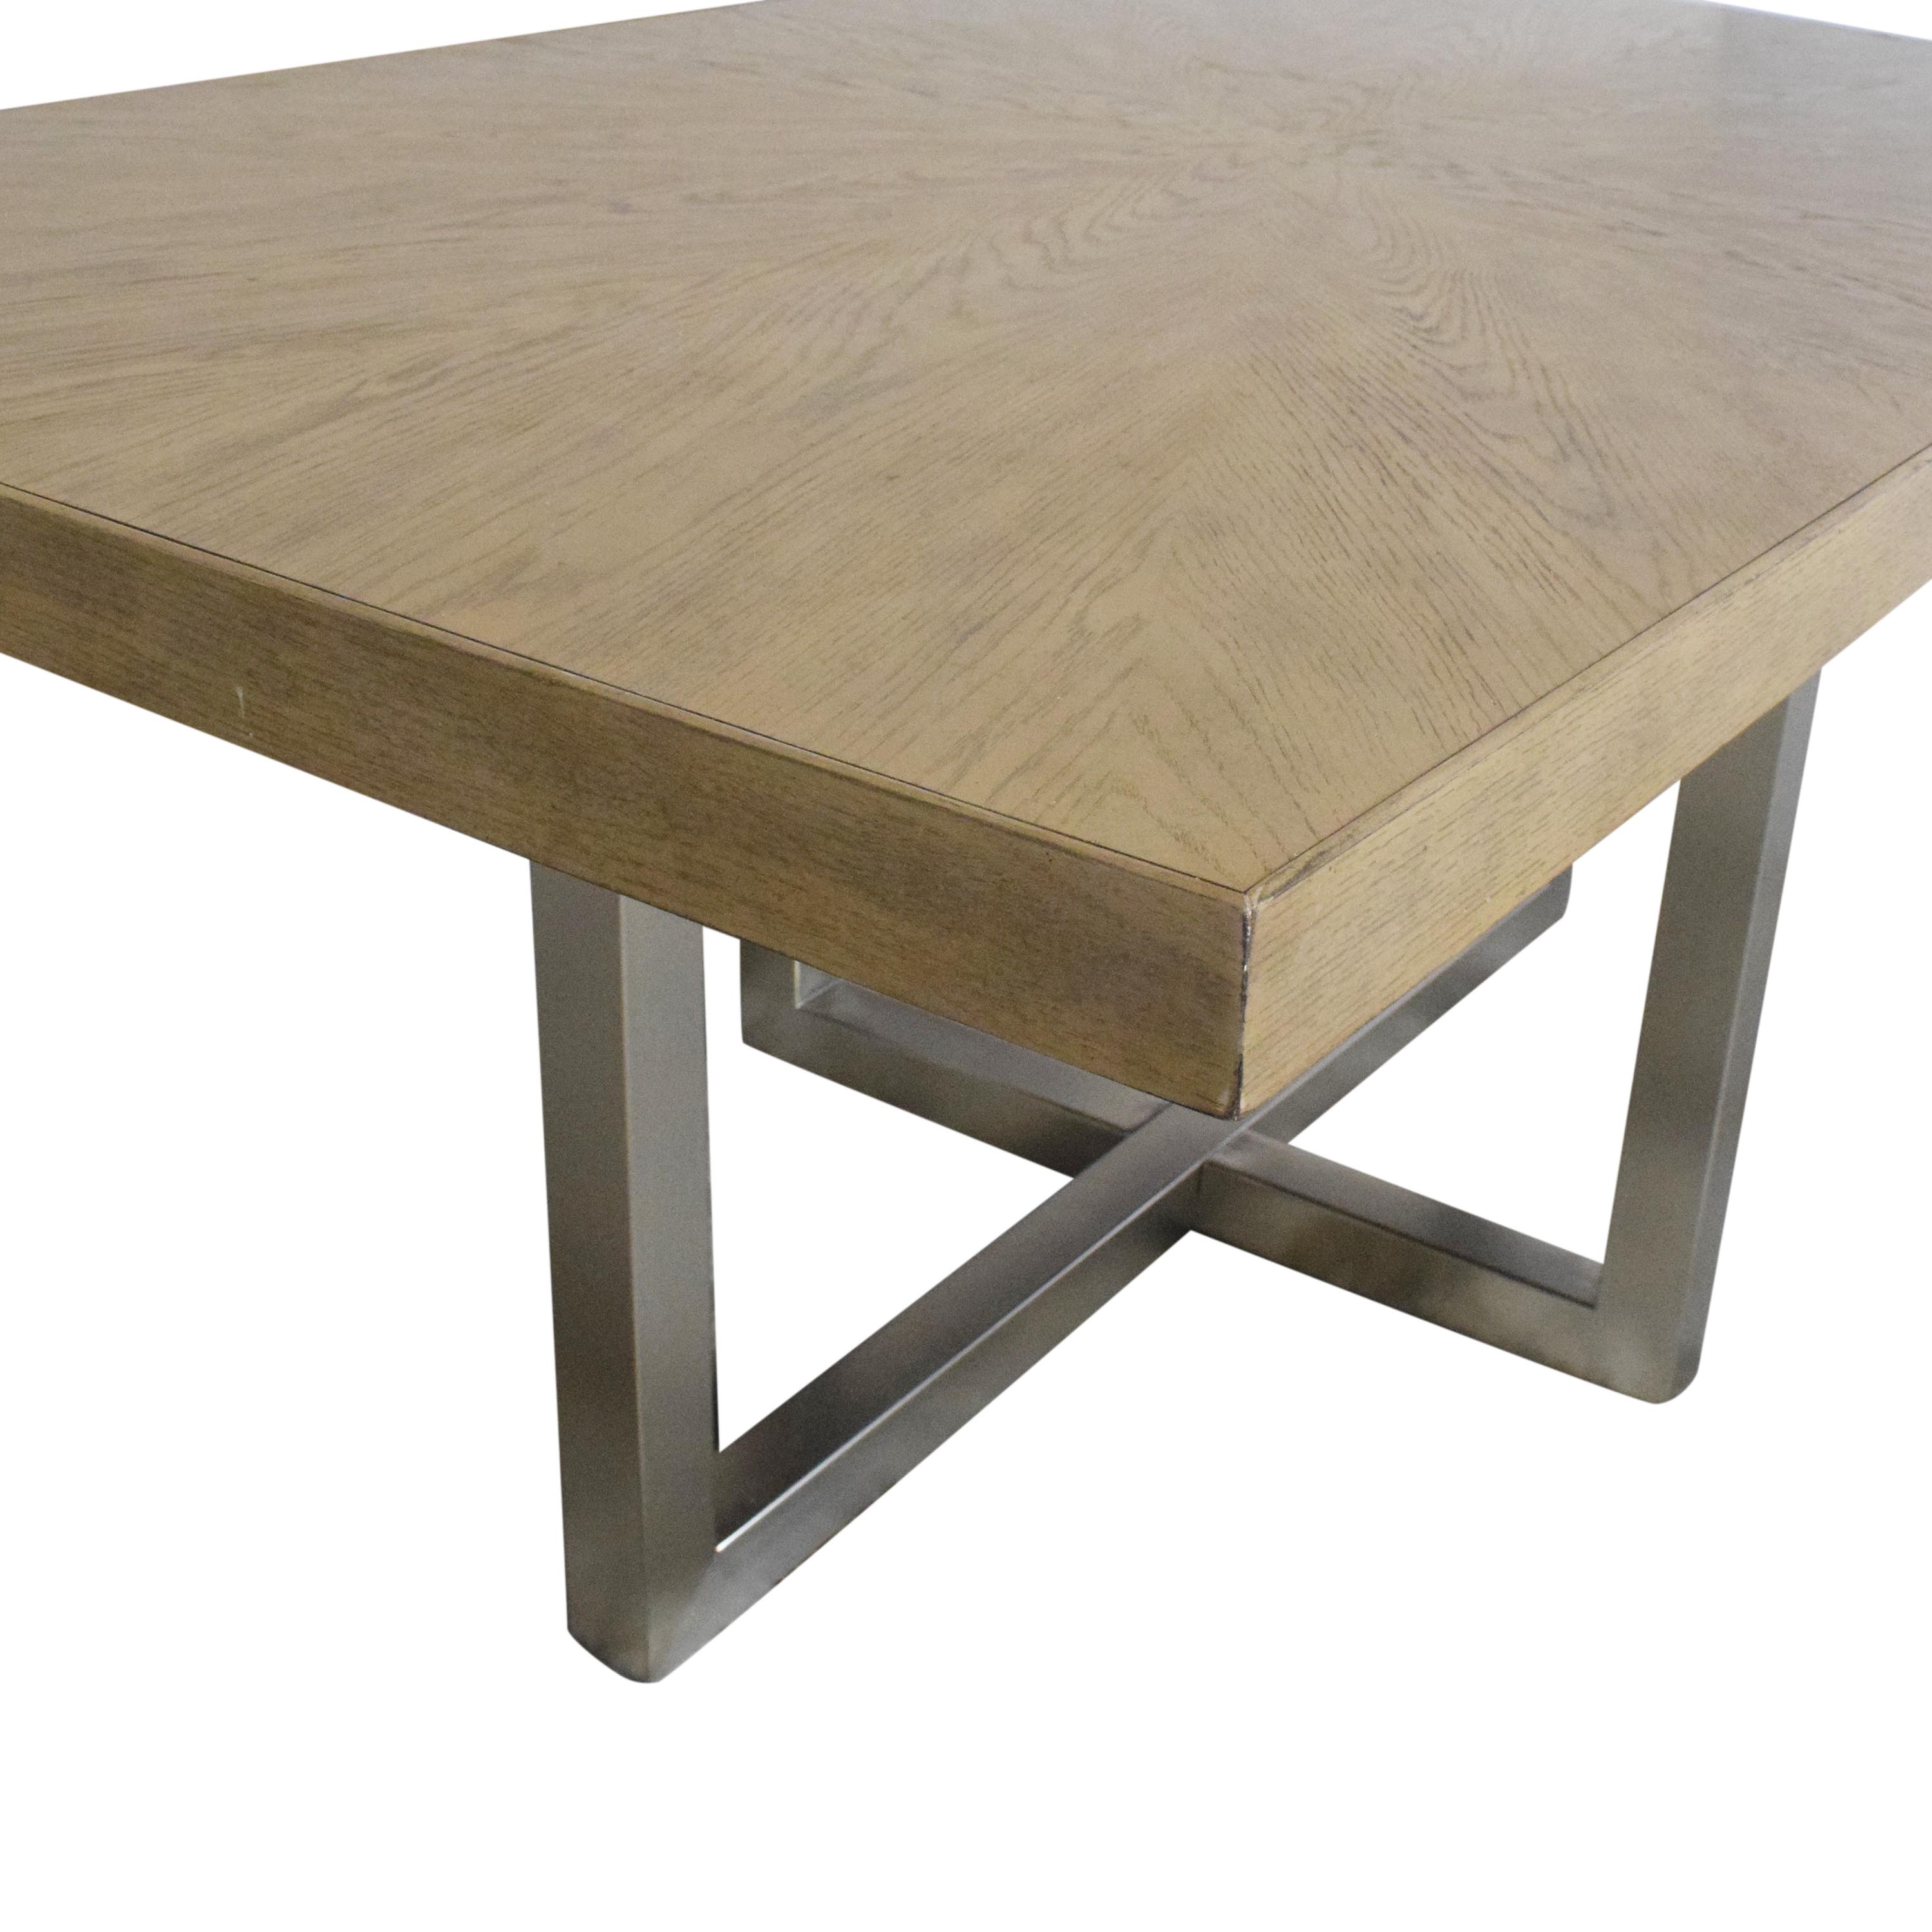 Macy's Macy's Altair Contemporary Dining Table Tables